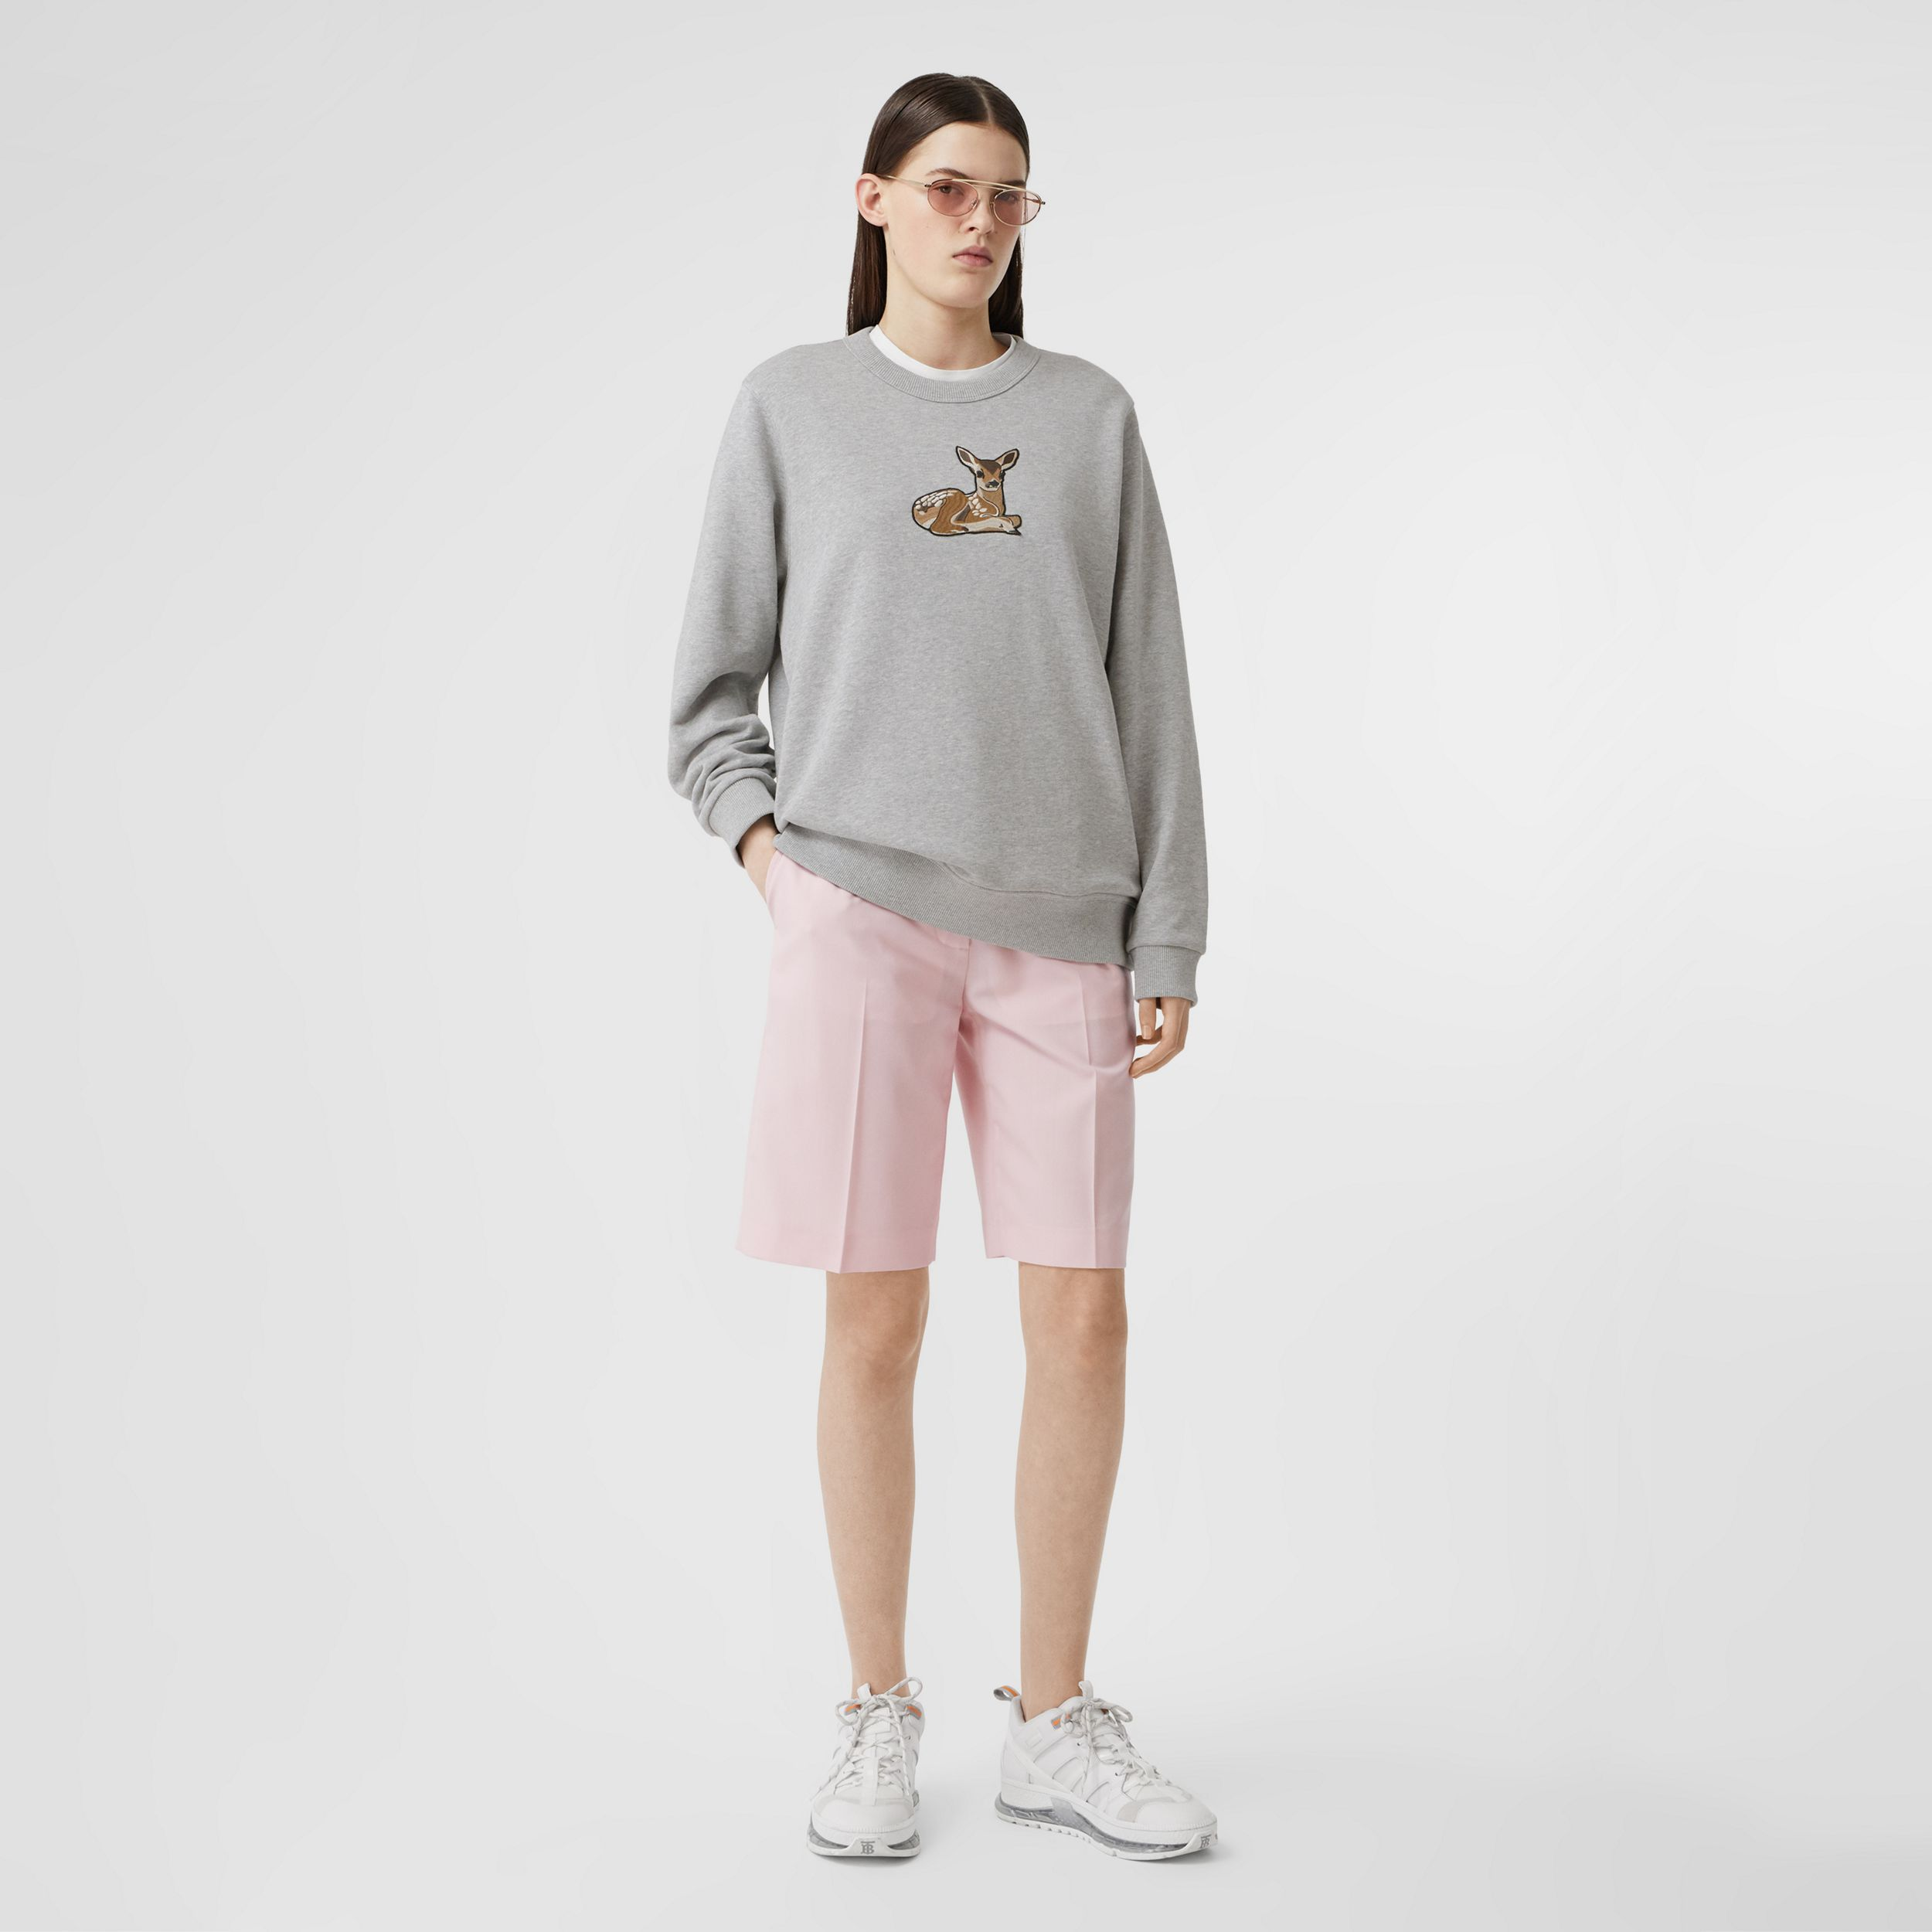 Deer Motif Cotton Oversized Sweatshirt in Pale Grey Melange - Women | Burberry - 1